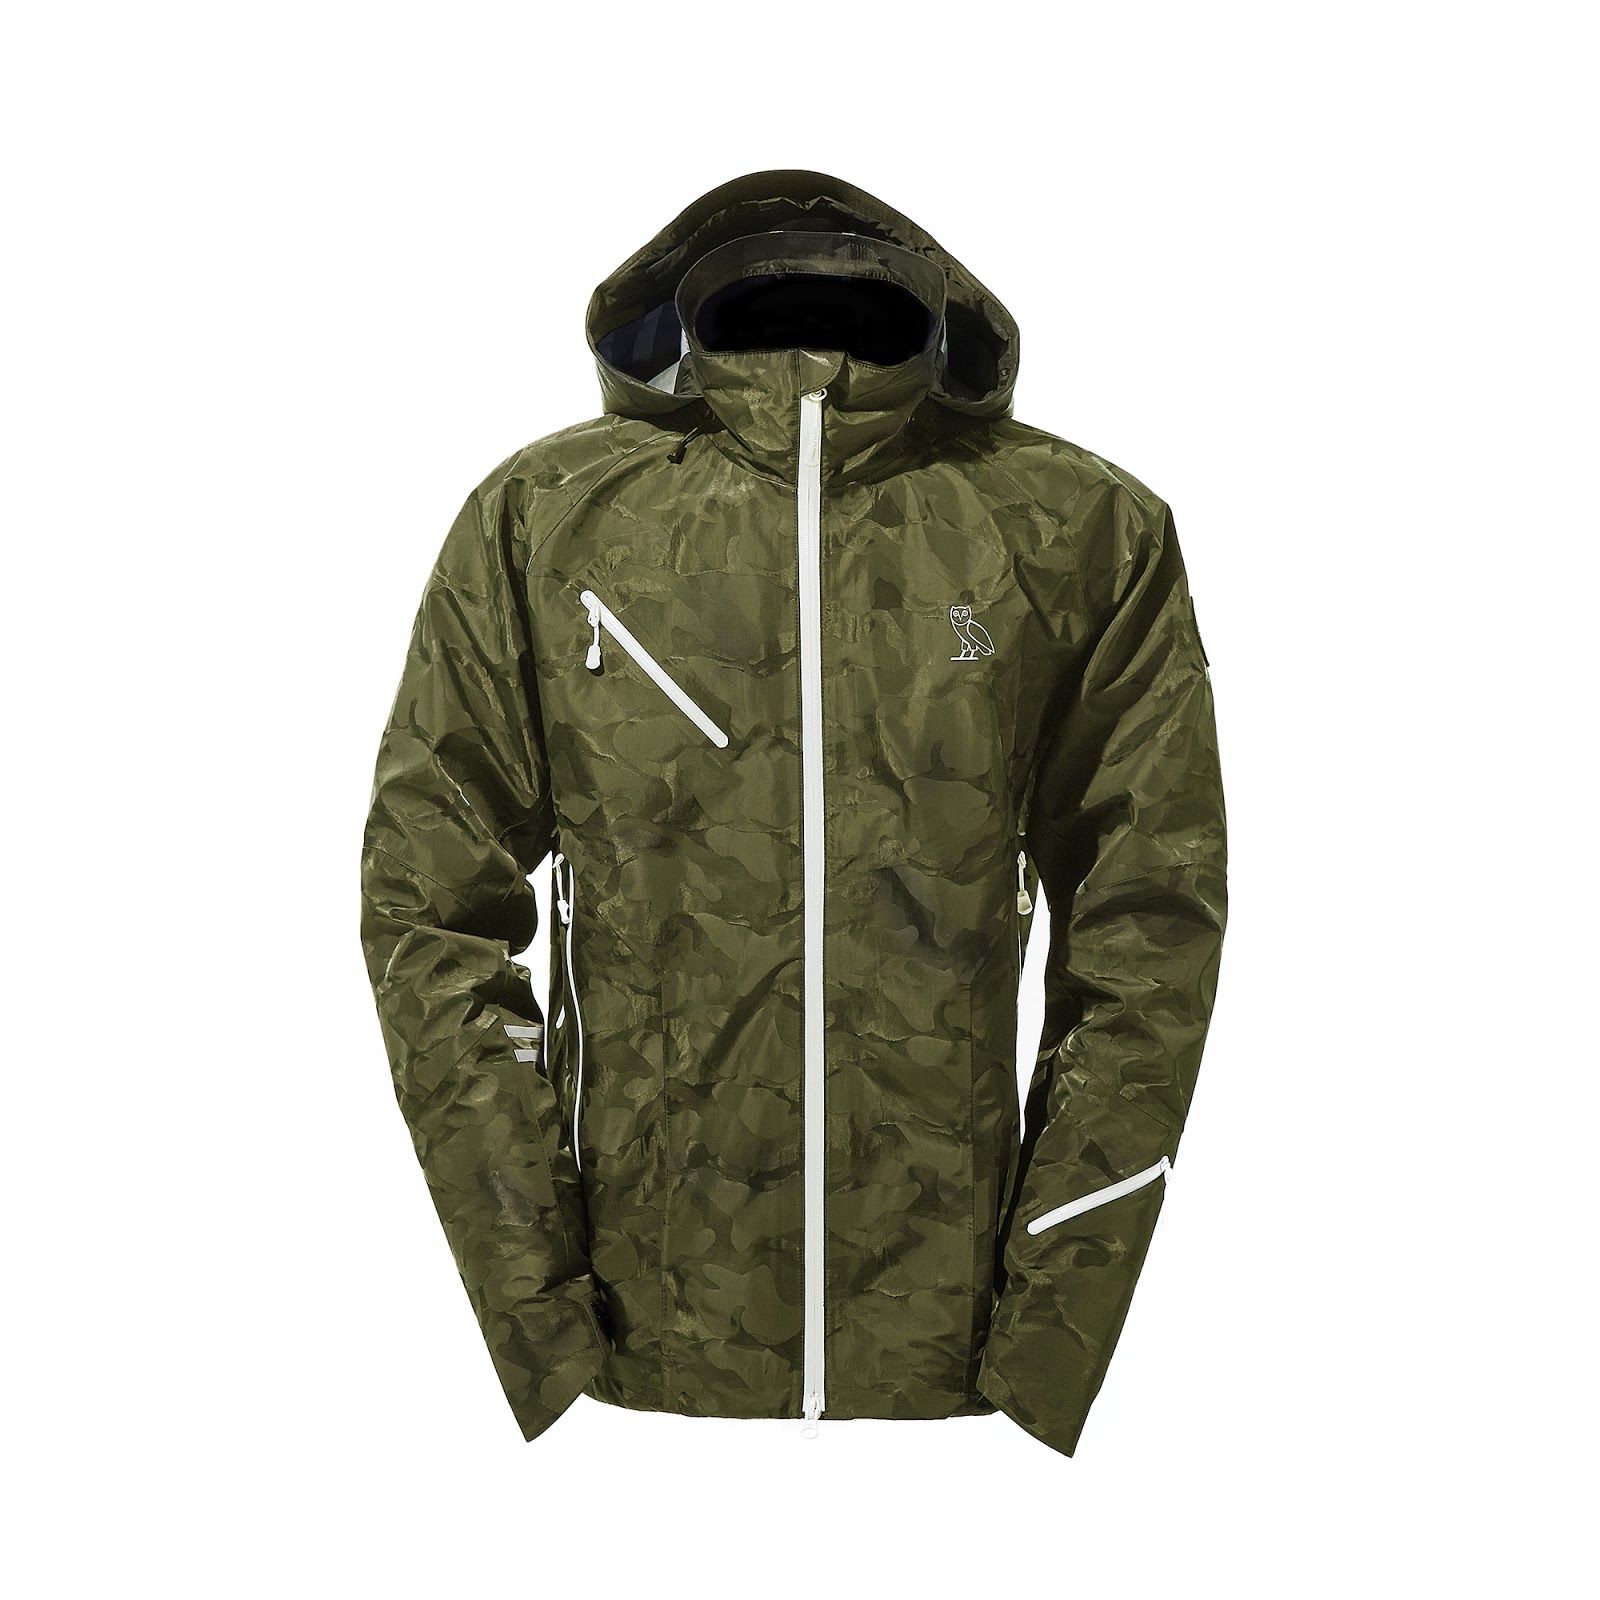 26c41258427 OCTOBERS VERY OWN x CANADA GOOSE SPRING 2016 TIMBER SHELL JACKET